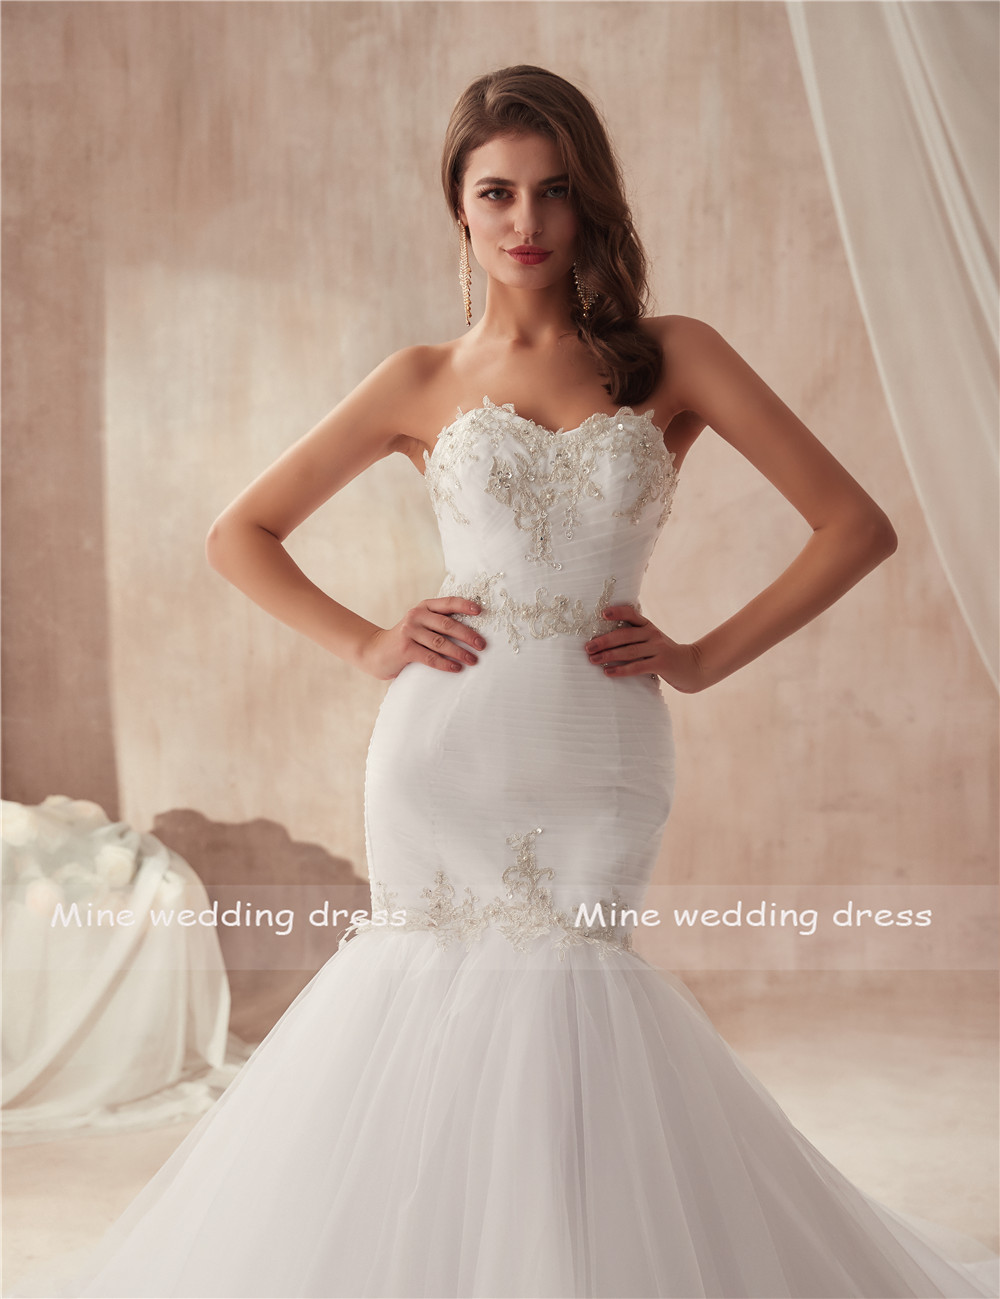 Image 5 - vestido de festa de casamento Strapless Ruched Tulle Slim Sexy Mermaid Wedding Dress with Silver Lace Applique Bridal Gowns-in Wedding Dresses from Weddings & Events